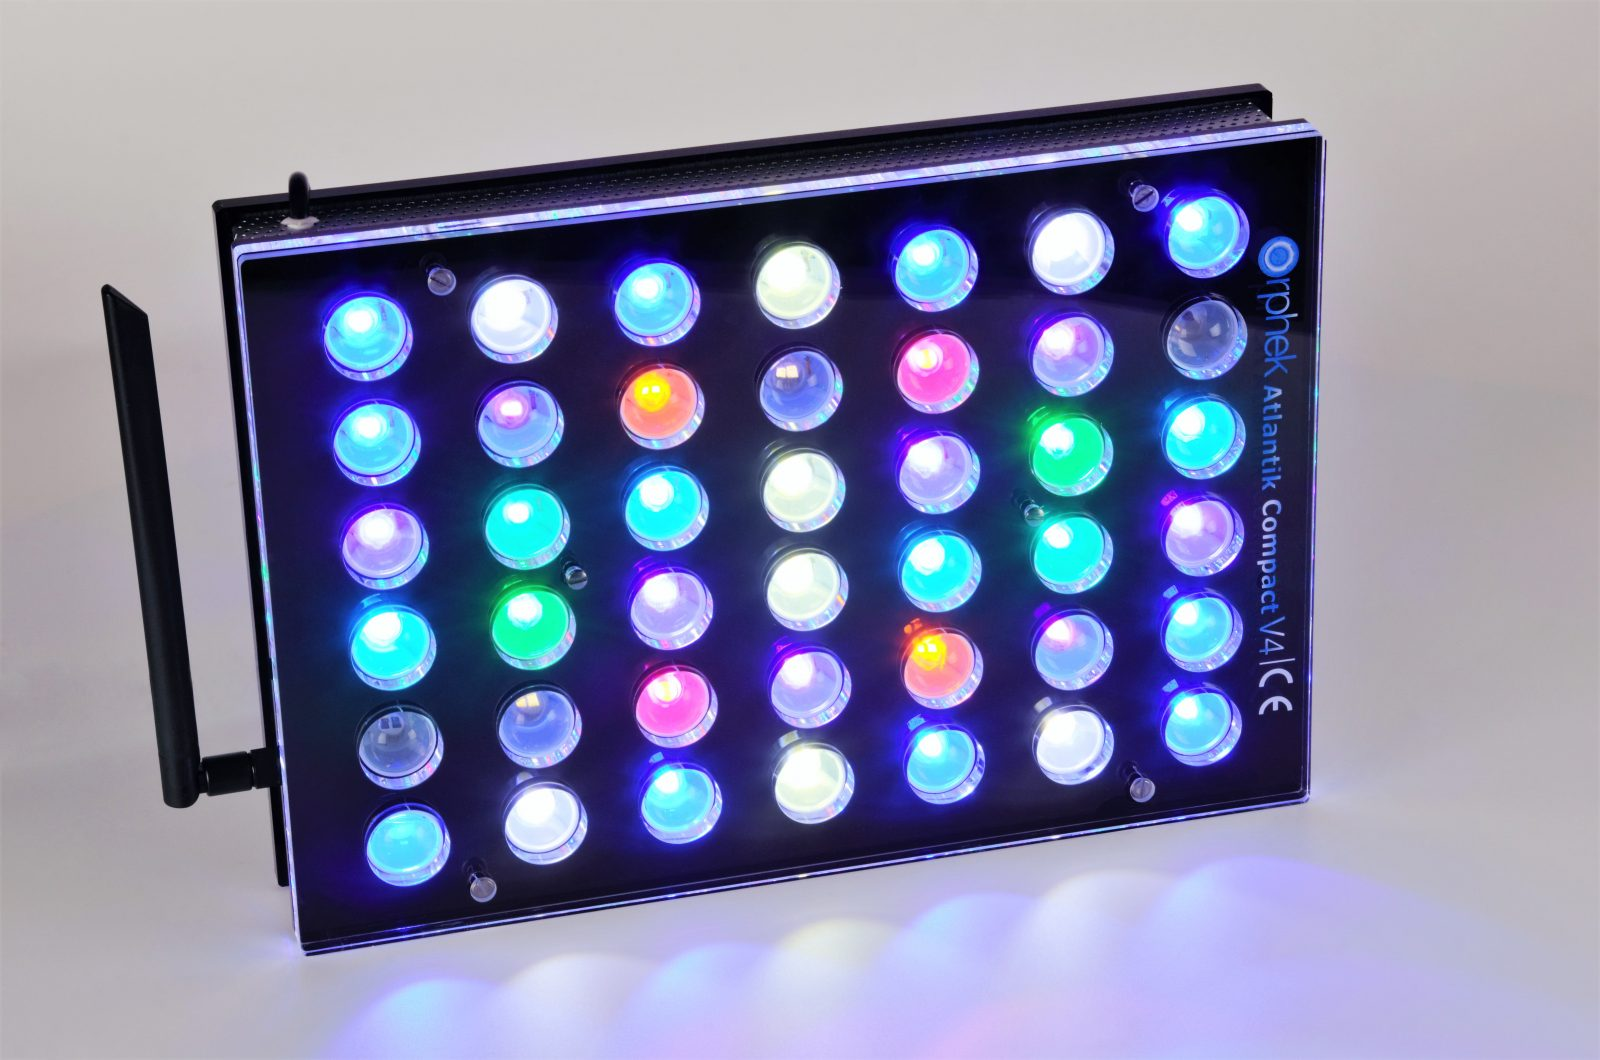 Orphek Aquarium LED Lighting Atlantik Compact V4 light on channel 1 +2+3+4